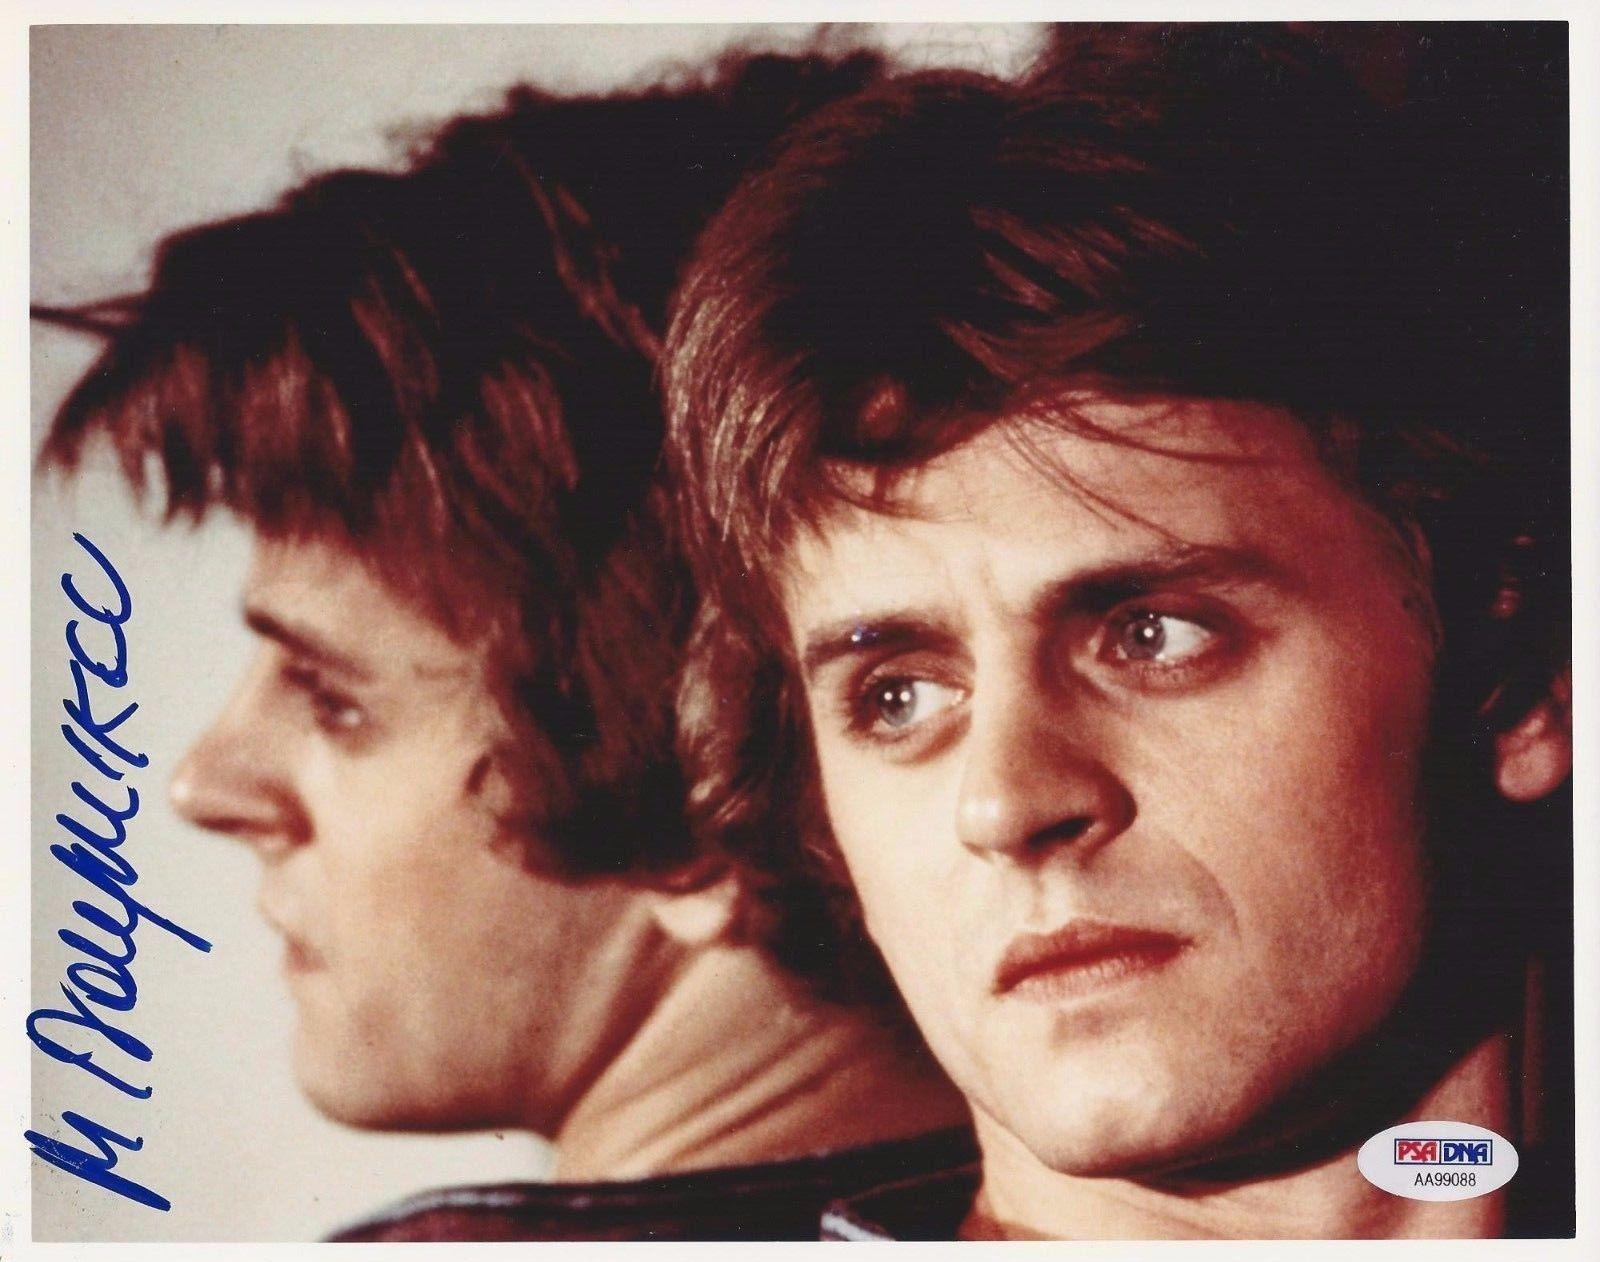 MIKHAIL BARYSHNIKOV Signed 8 x10 PHOTO w/ PSA/DNA COA